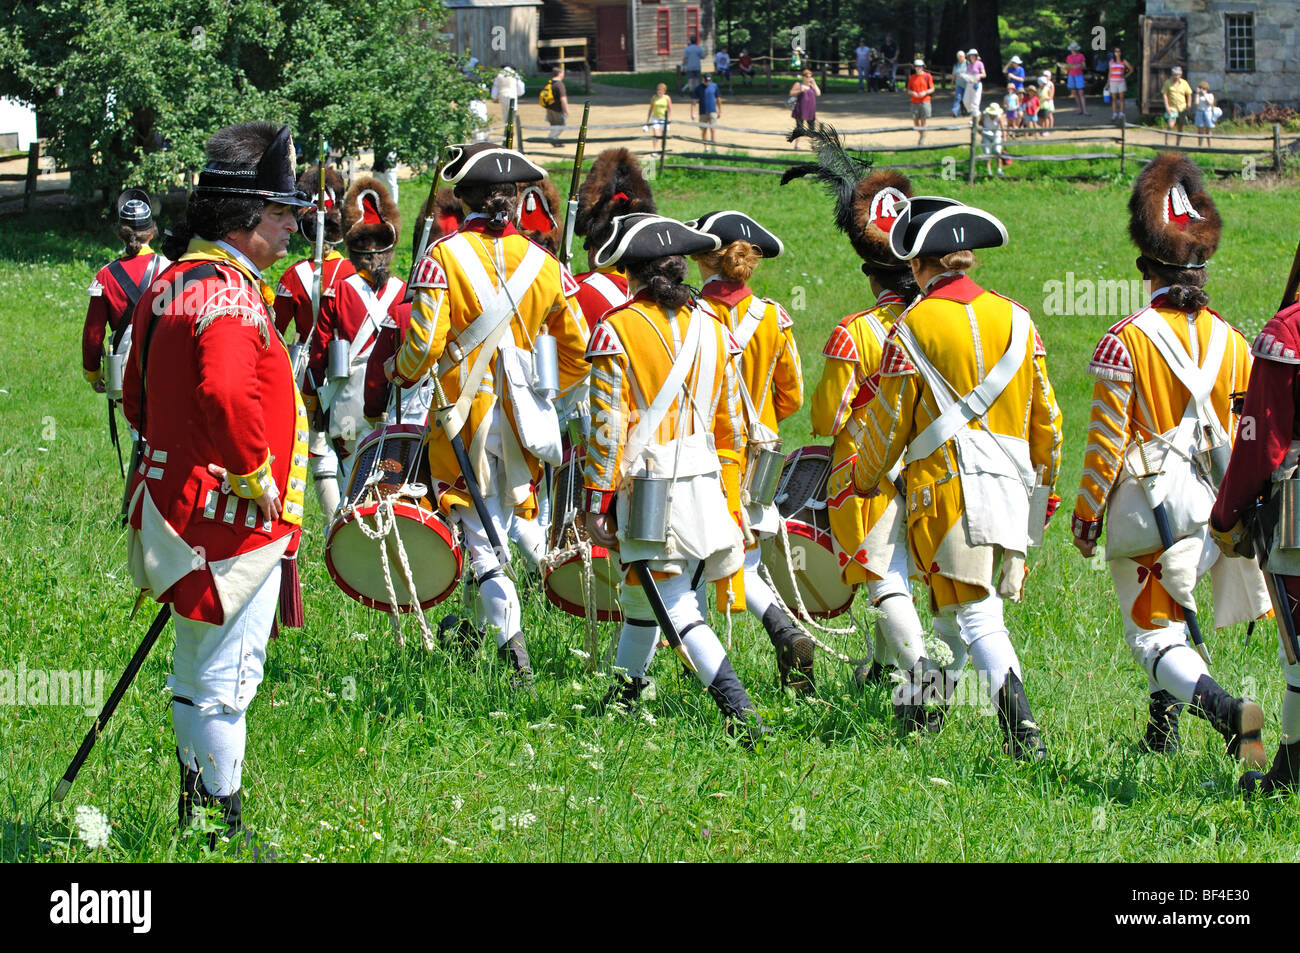 44th Regiment of Foot infantry regiment of the British Army - costumed American Revolutionary War (1770's) era - Stock Image